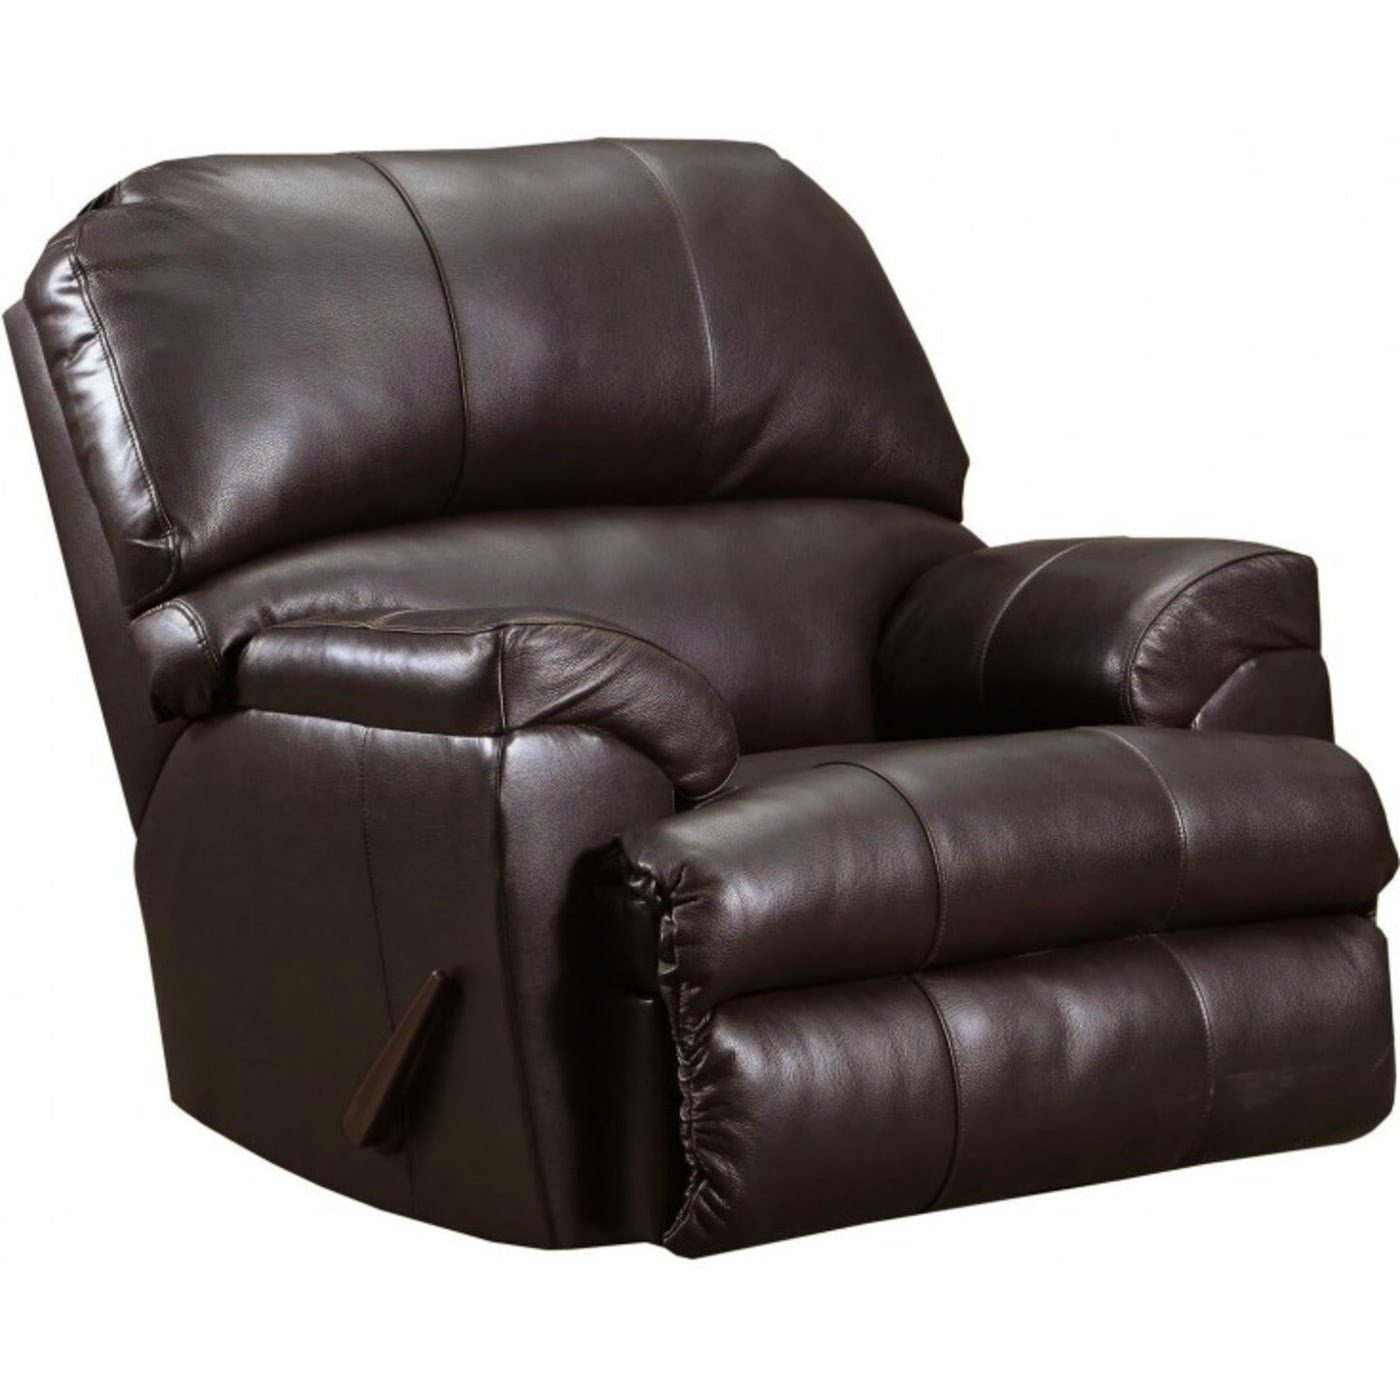 Lane 4010-19 Bark Recliner